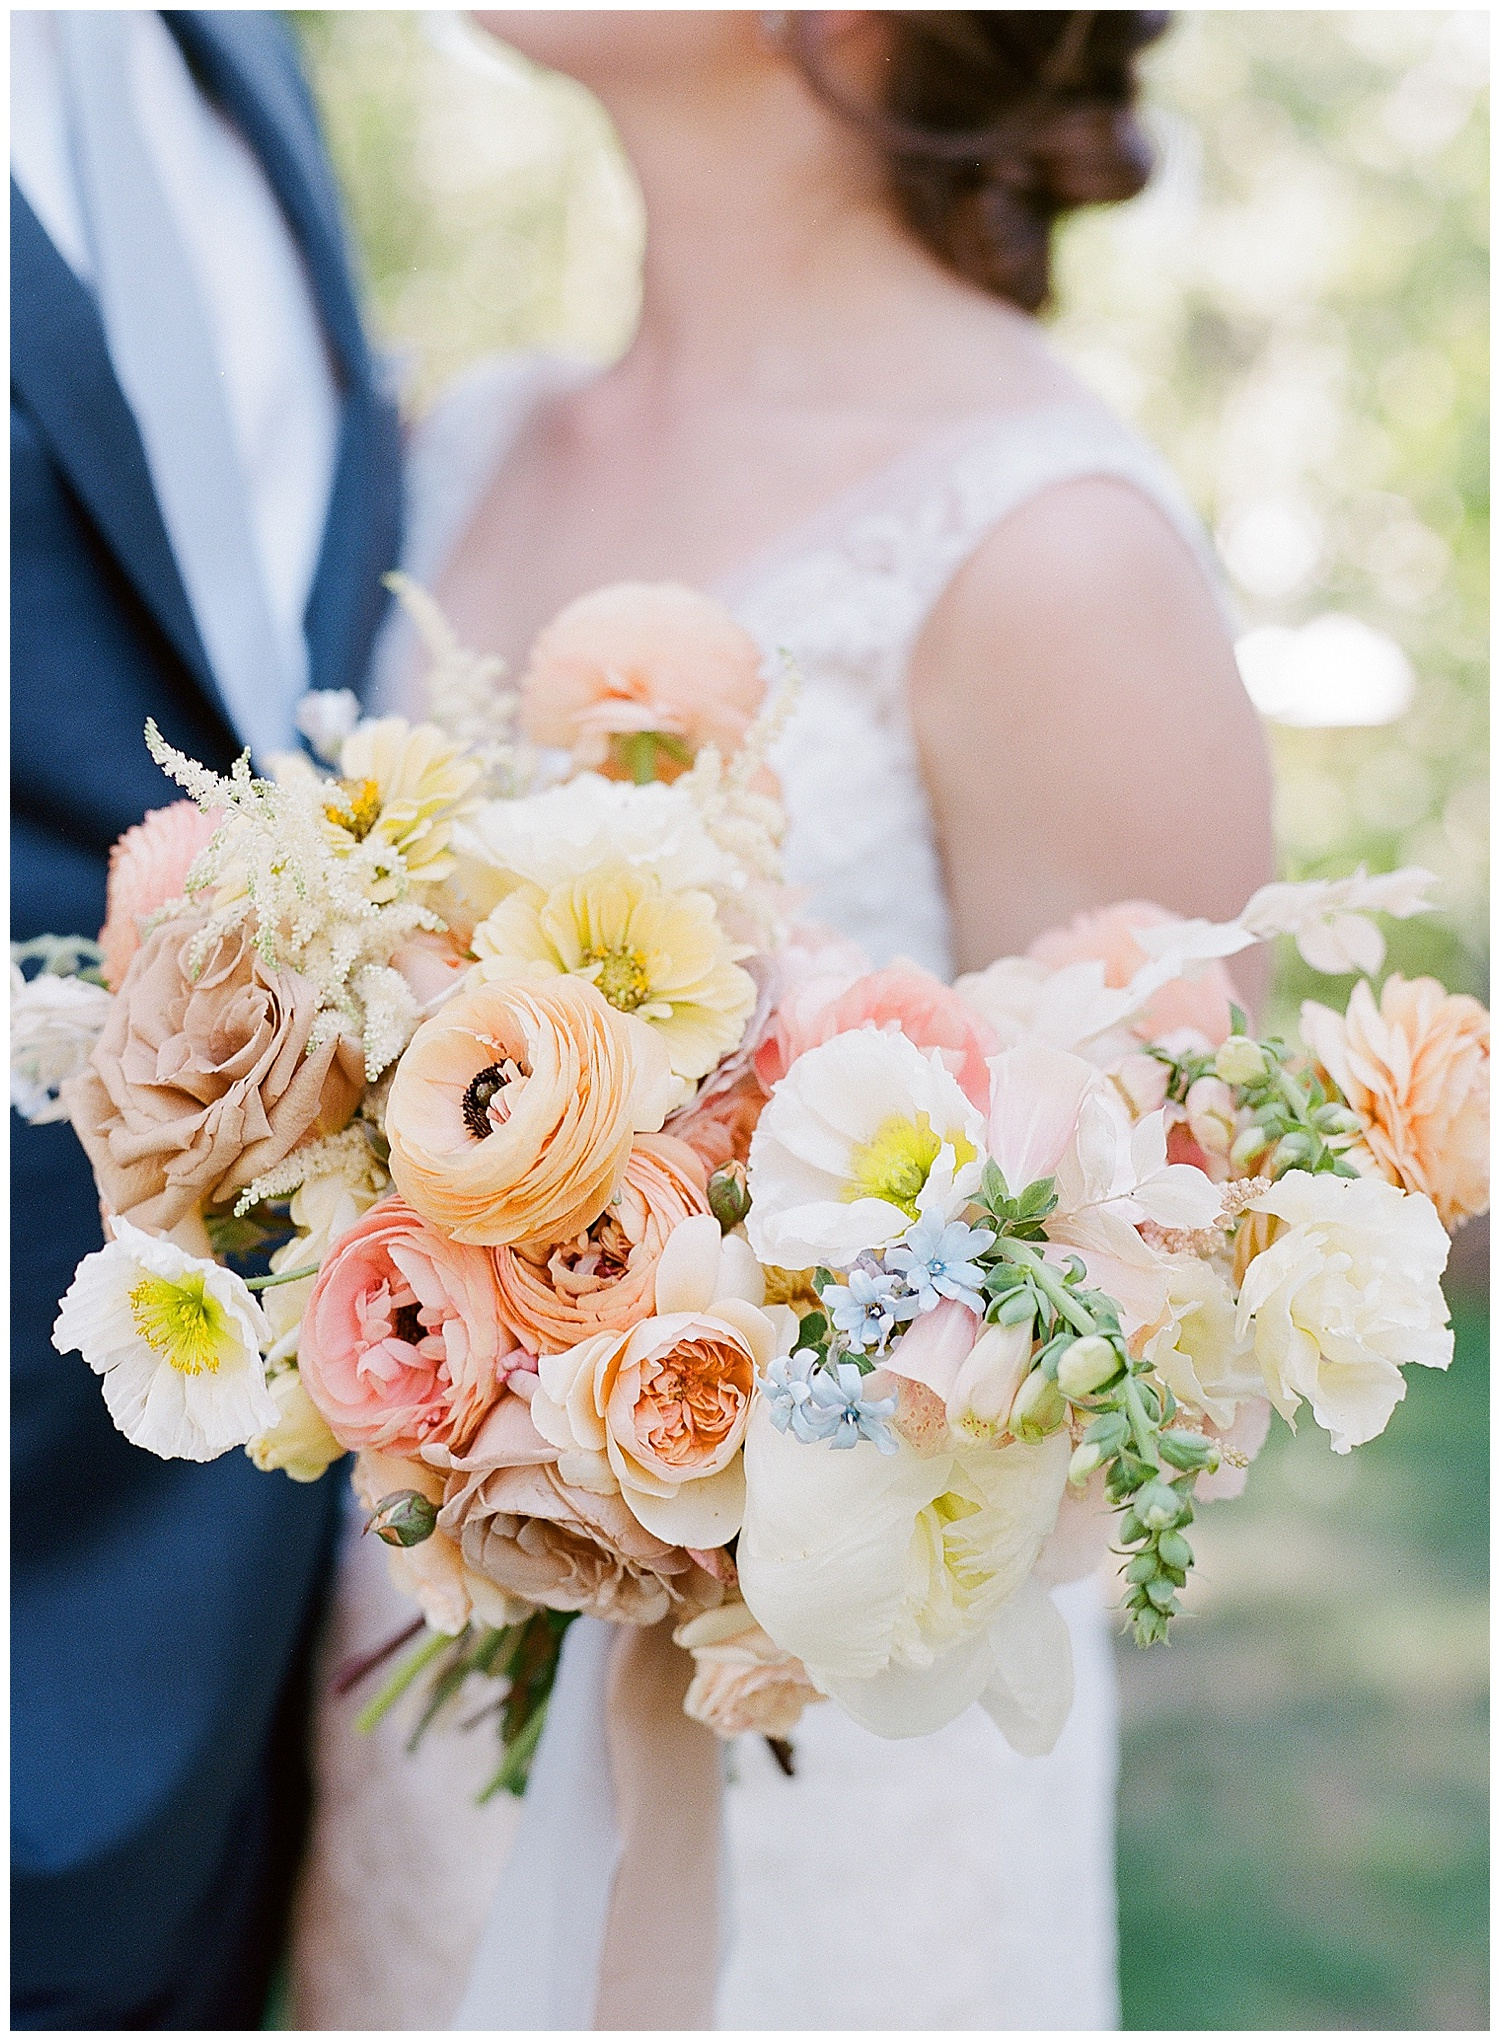 Janine_Licare_Photography_San_Francisco_Wedding_Photographer_Lake_Tahoe_West_Shore_Cafe_Colorful_Summer_0023.jpg